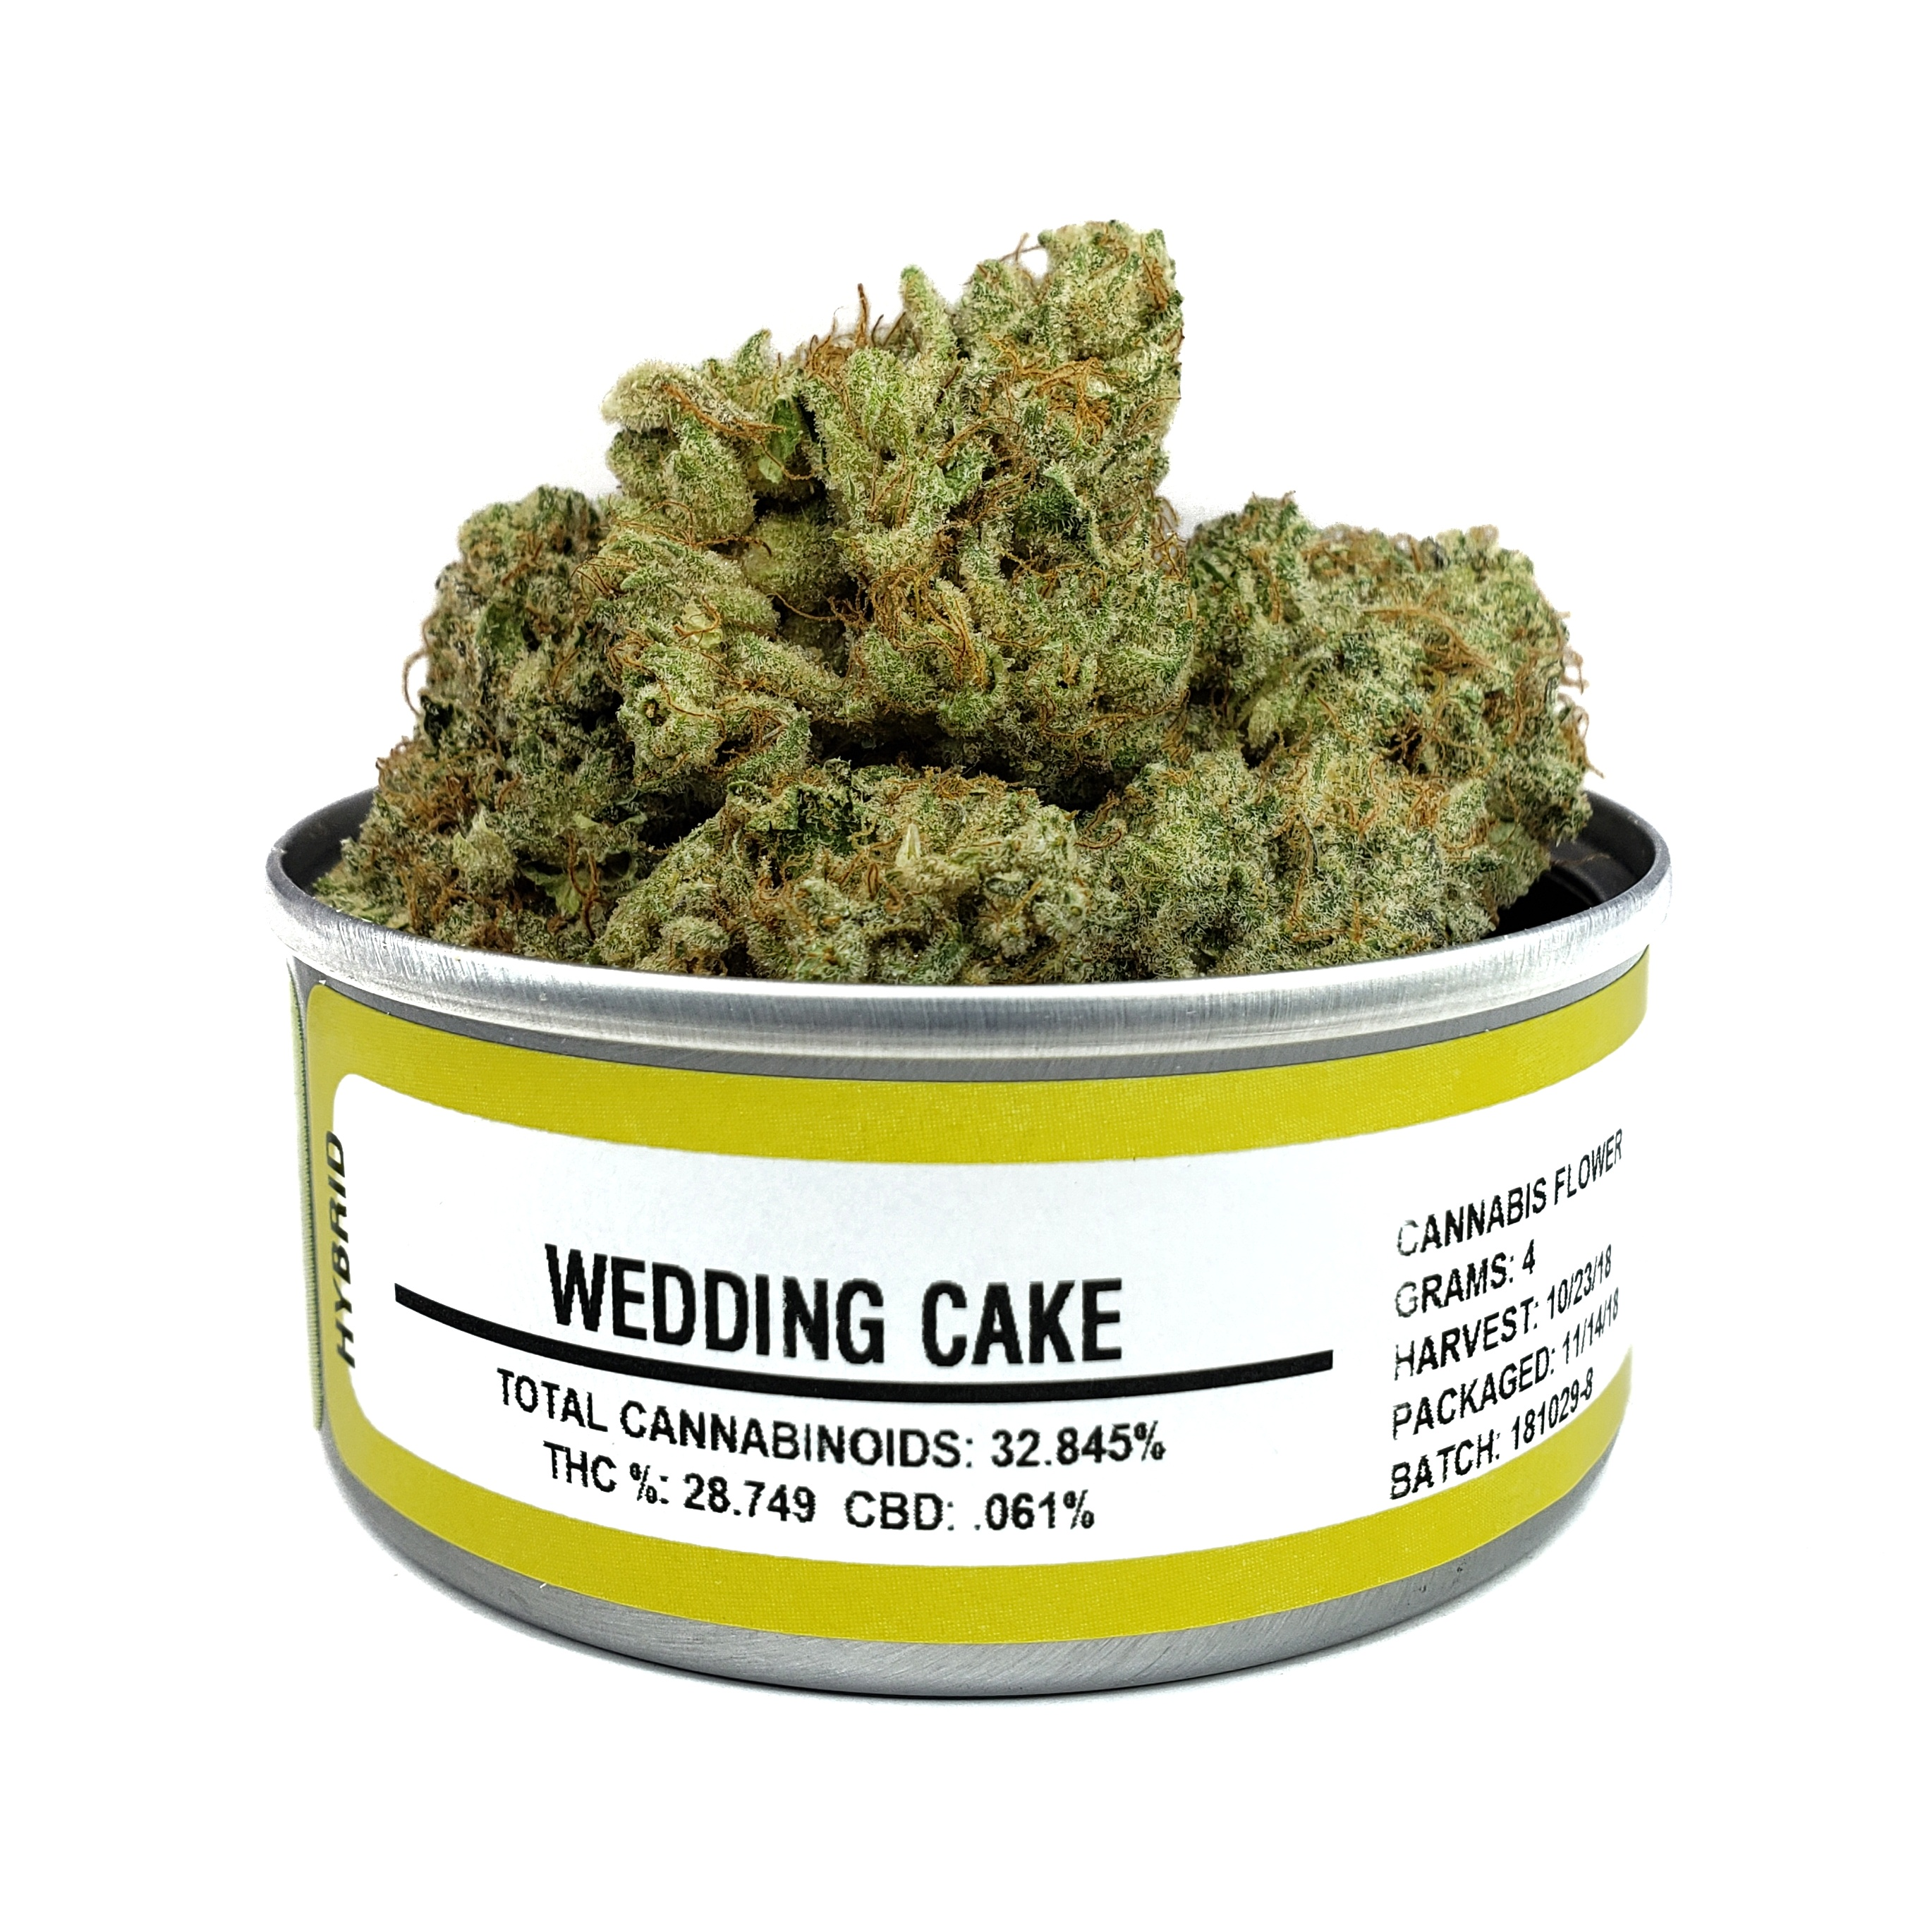 weddingcakeCan